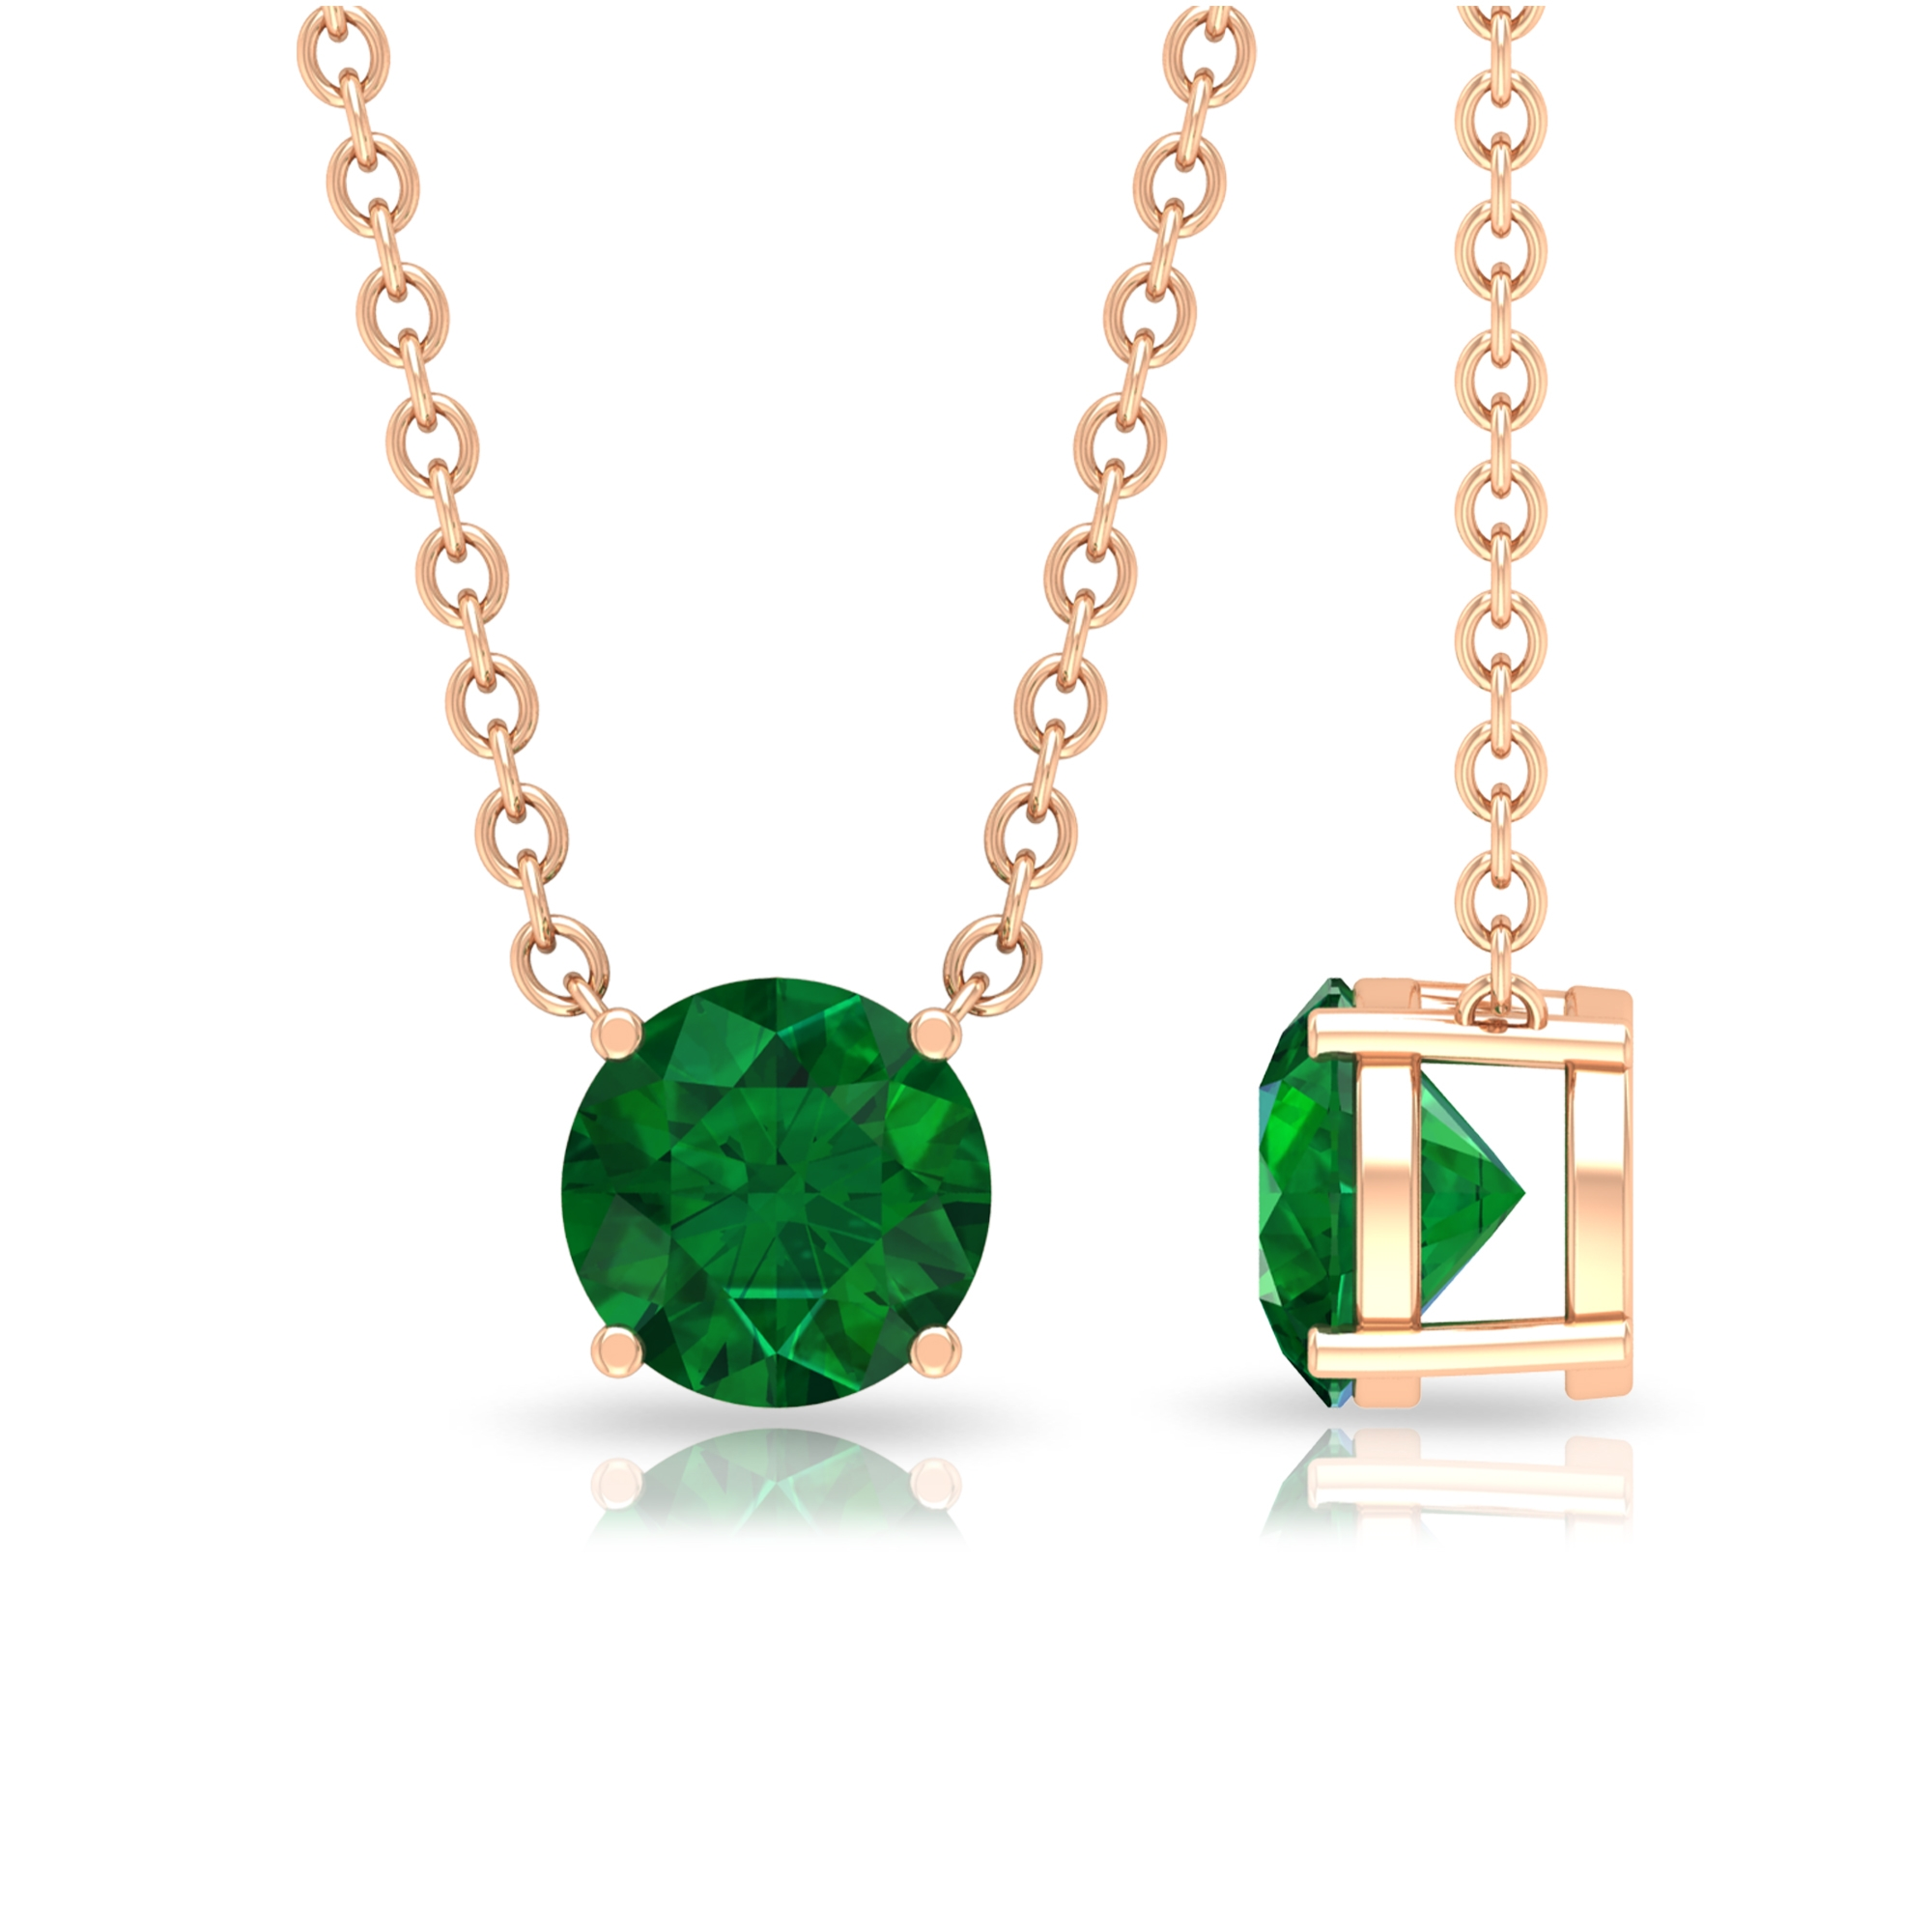 5 MM Round Cut Emerald Solitaire Minimal Necklace in 4 Prong Setting